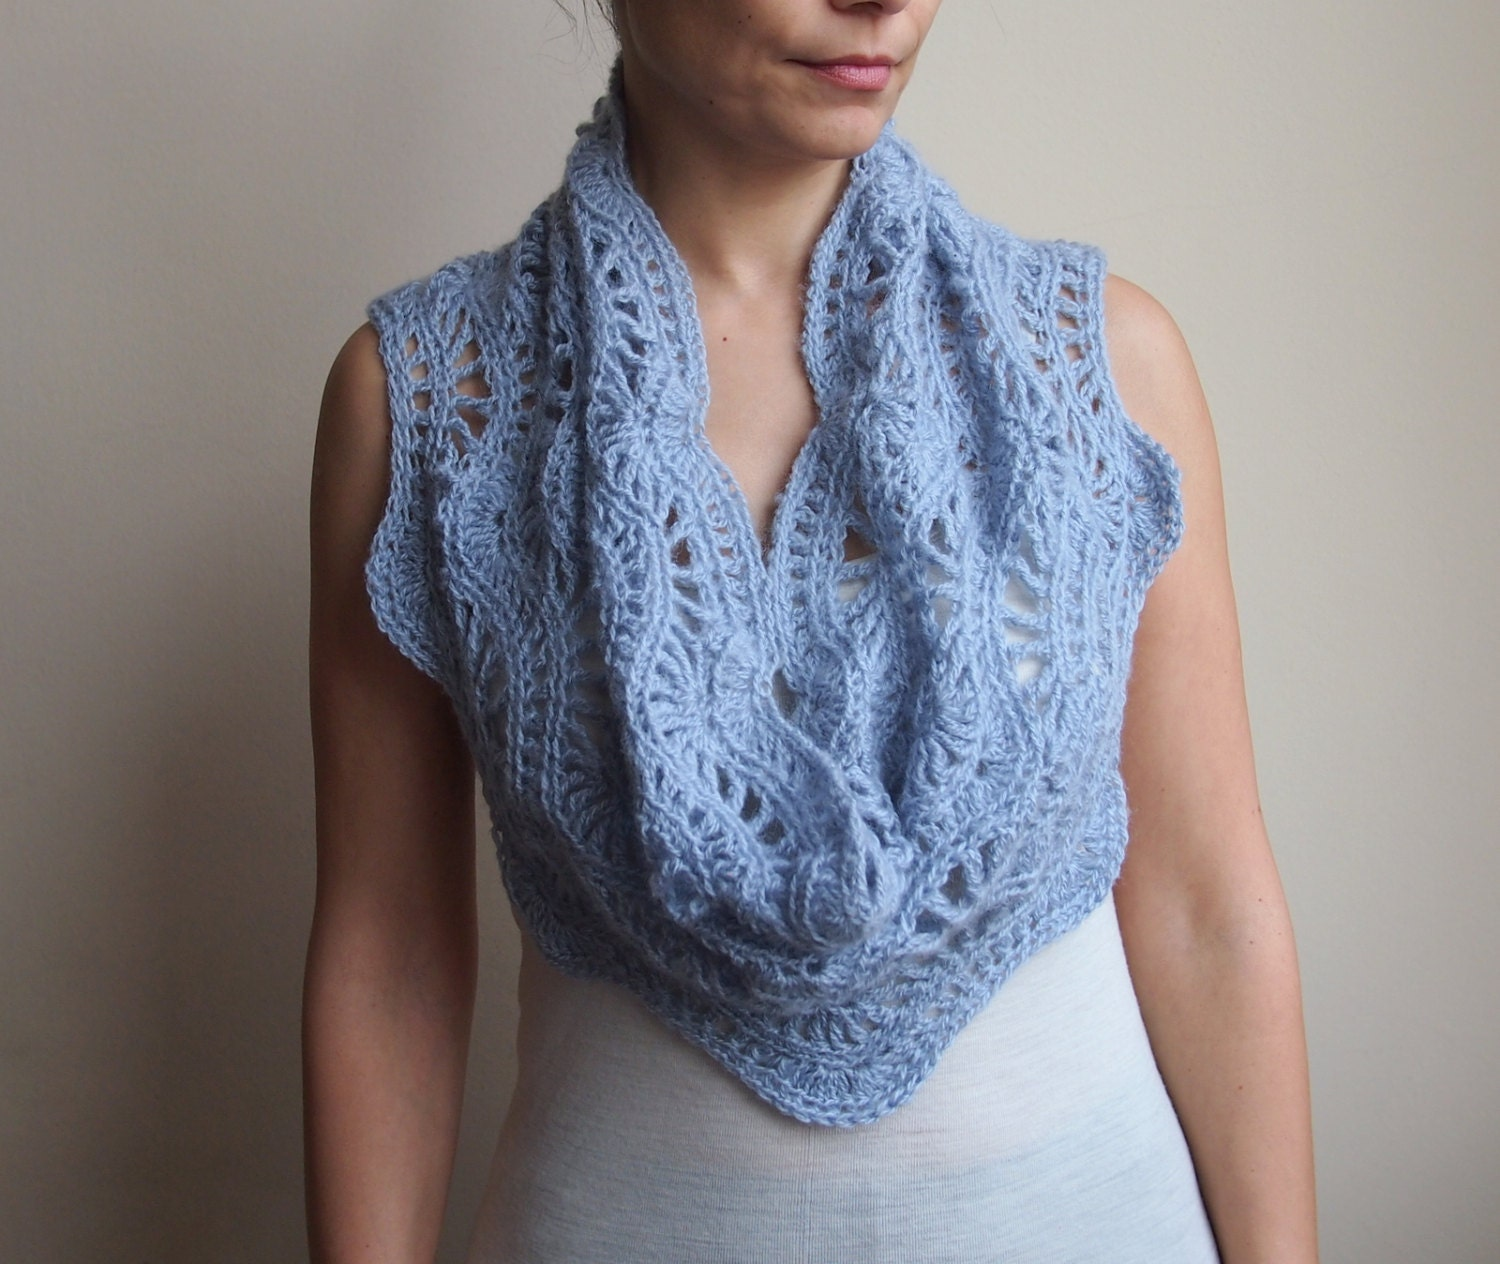 Crochet Pattern Ripple Shawl : Crochet pattern lace ripple scarf chevron waves infinity